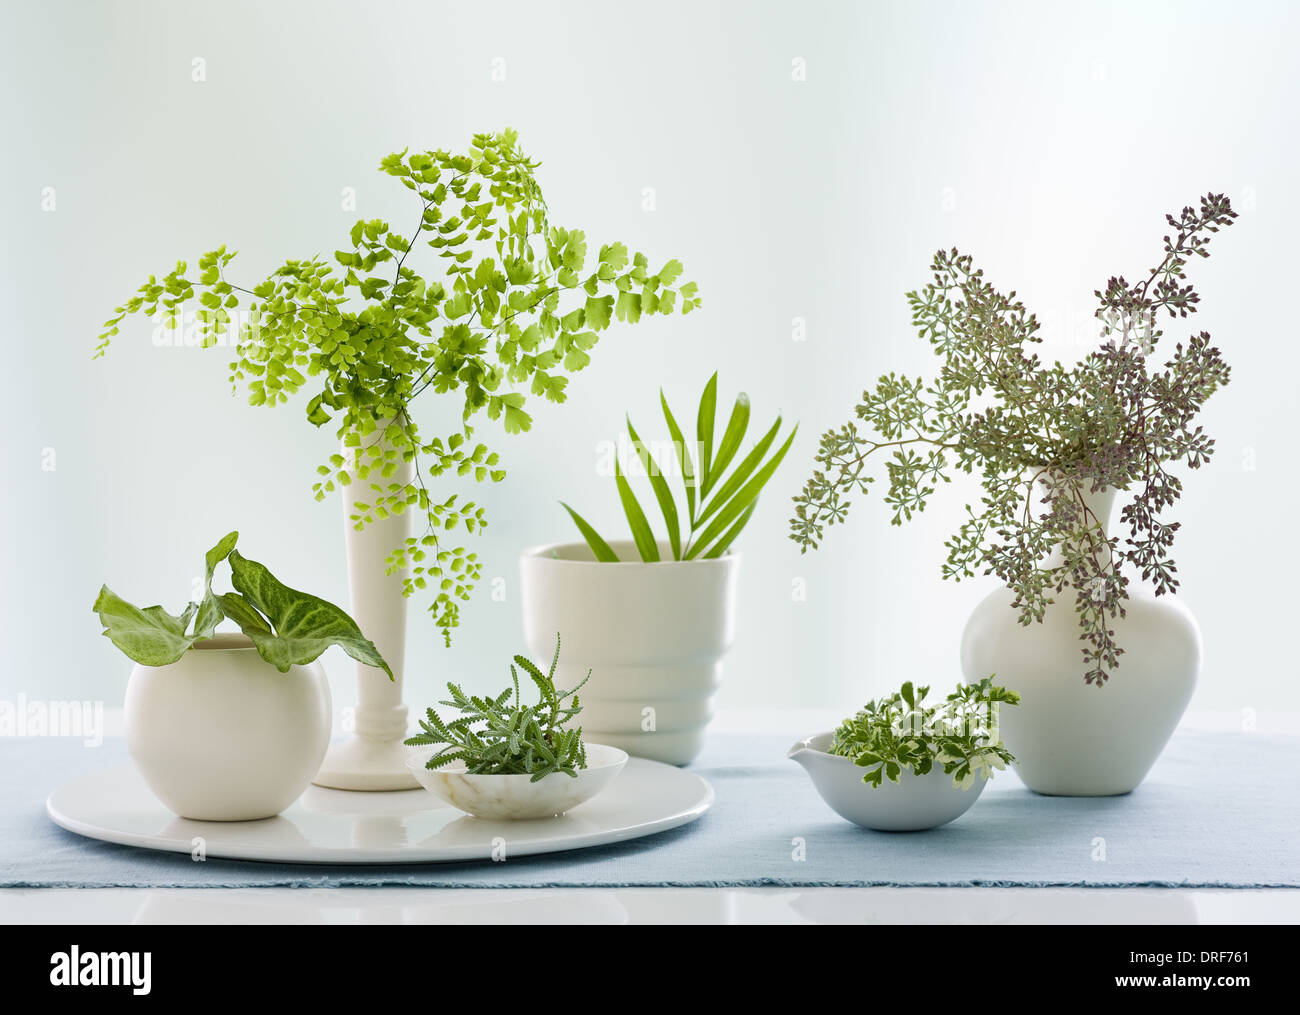 Maryland USA containers jugs variety of green leaves Studio - Stock Image